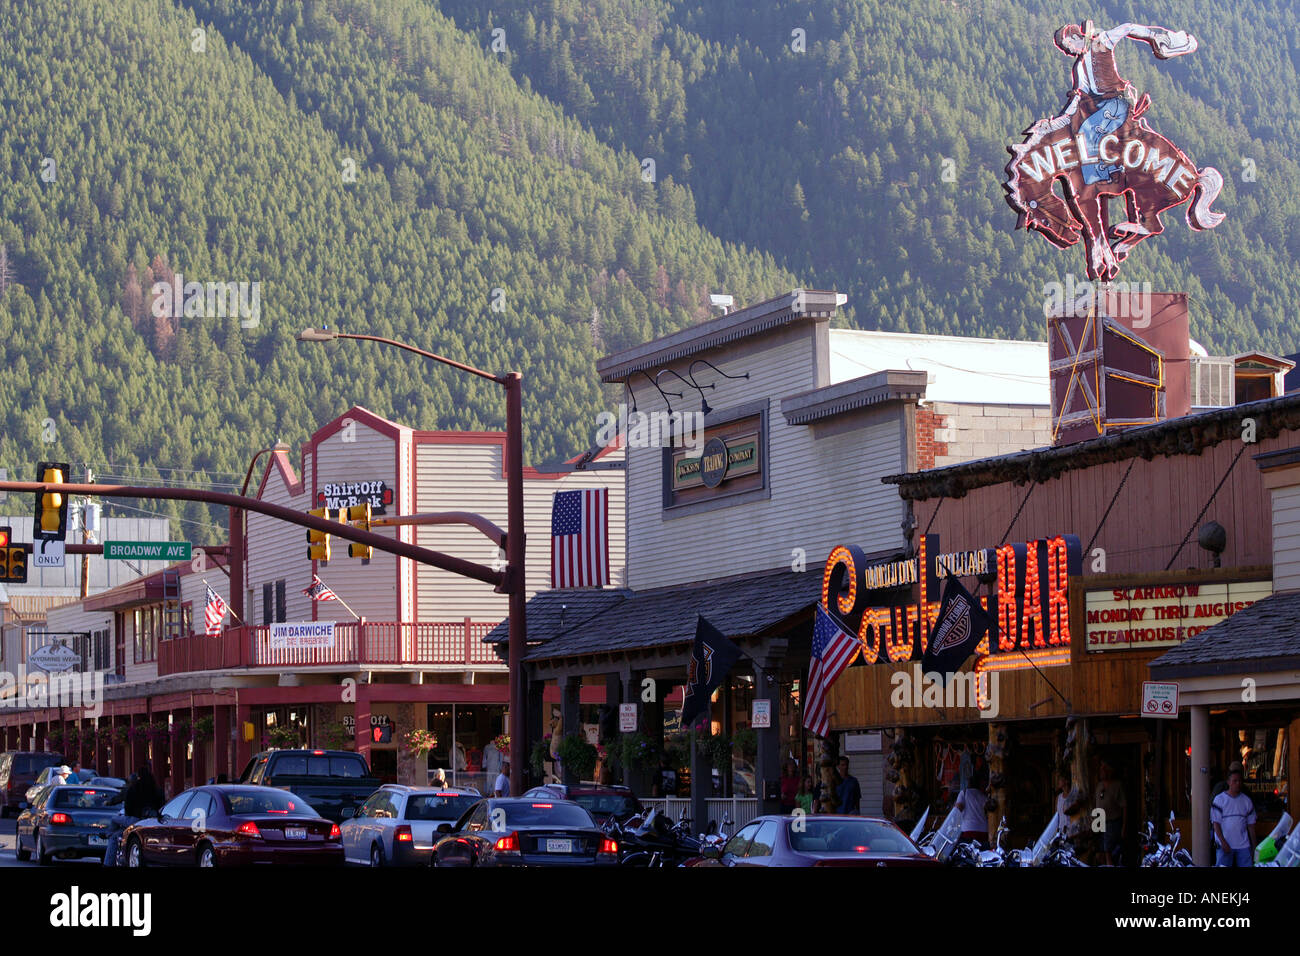 Downtown jackson hole wyoming stock photo 8859747 alamy for What to do in jackson wy